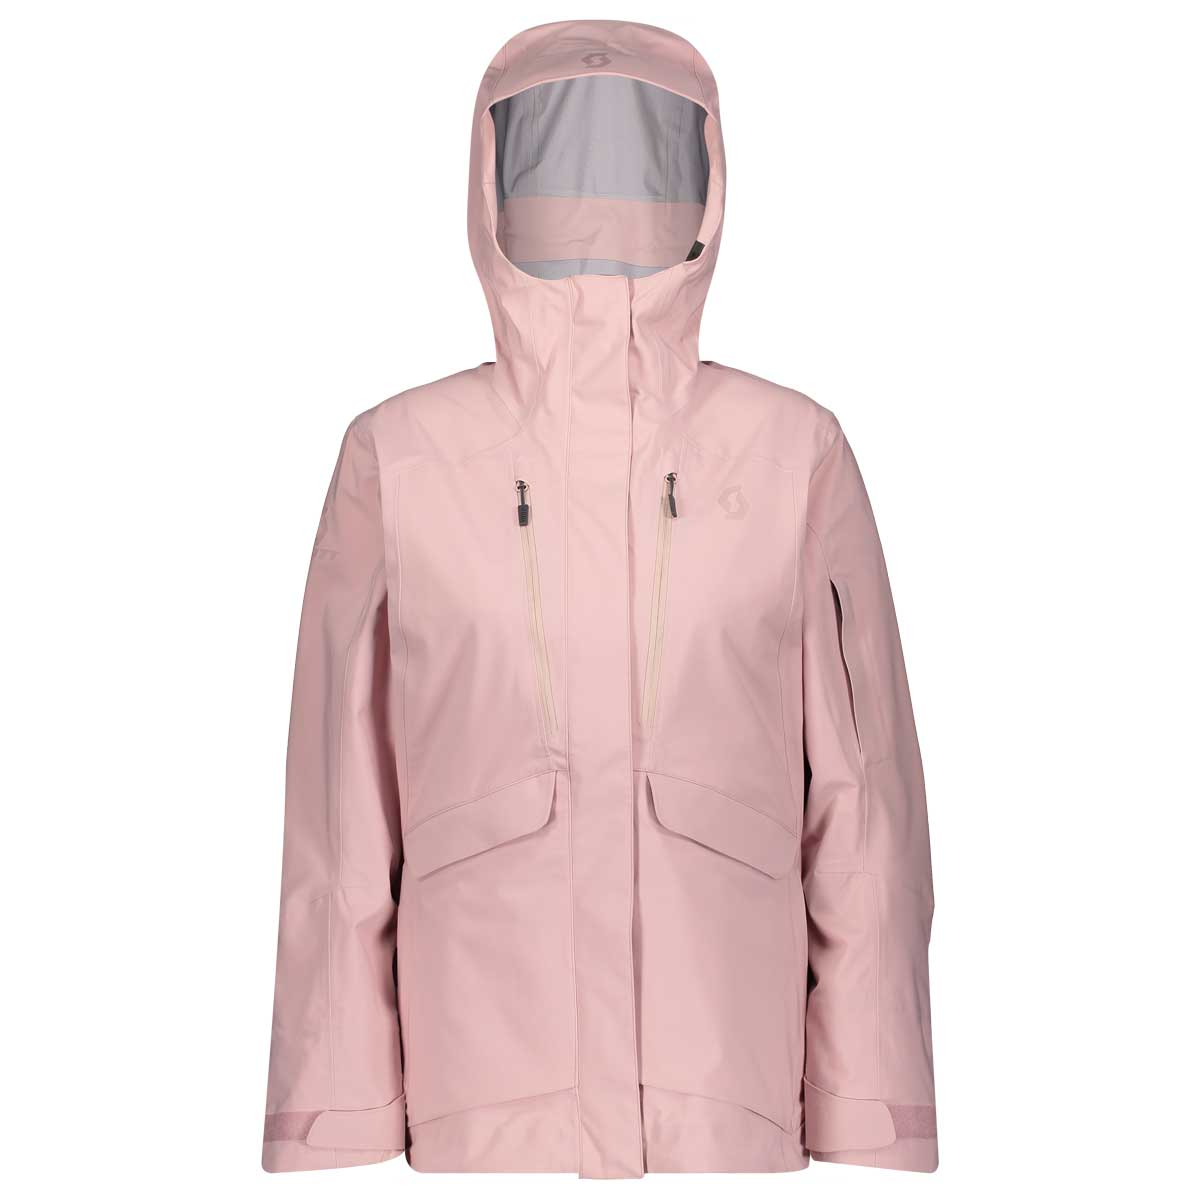 Scott women's vertic drx 3 layer jacket in pale purple